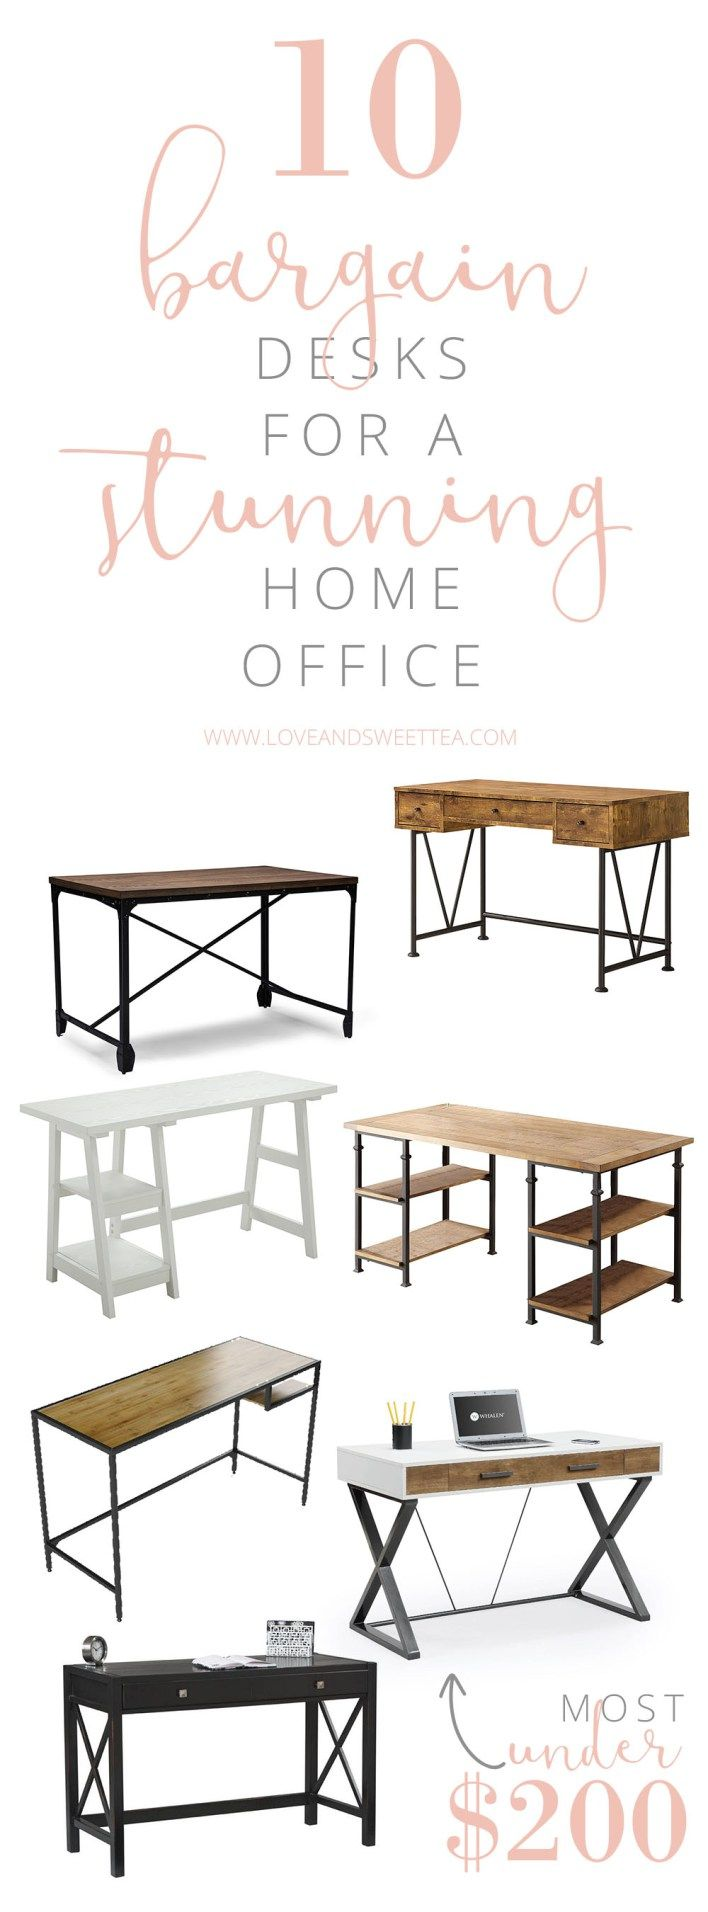 If you've seen my post about bargain desk chairs, you know I'm on the hunt for stylish and affordable office furniture.